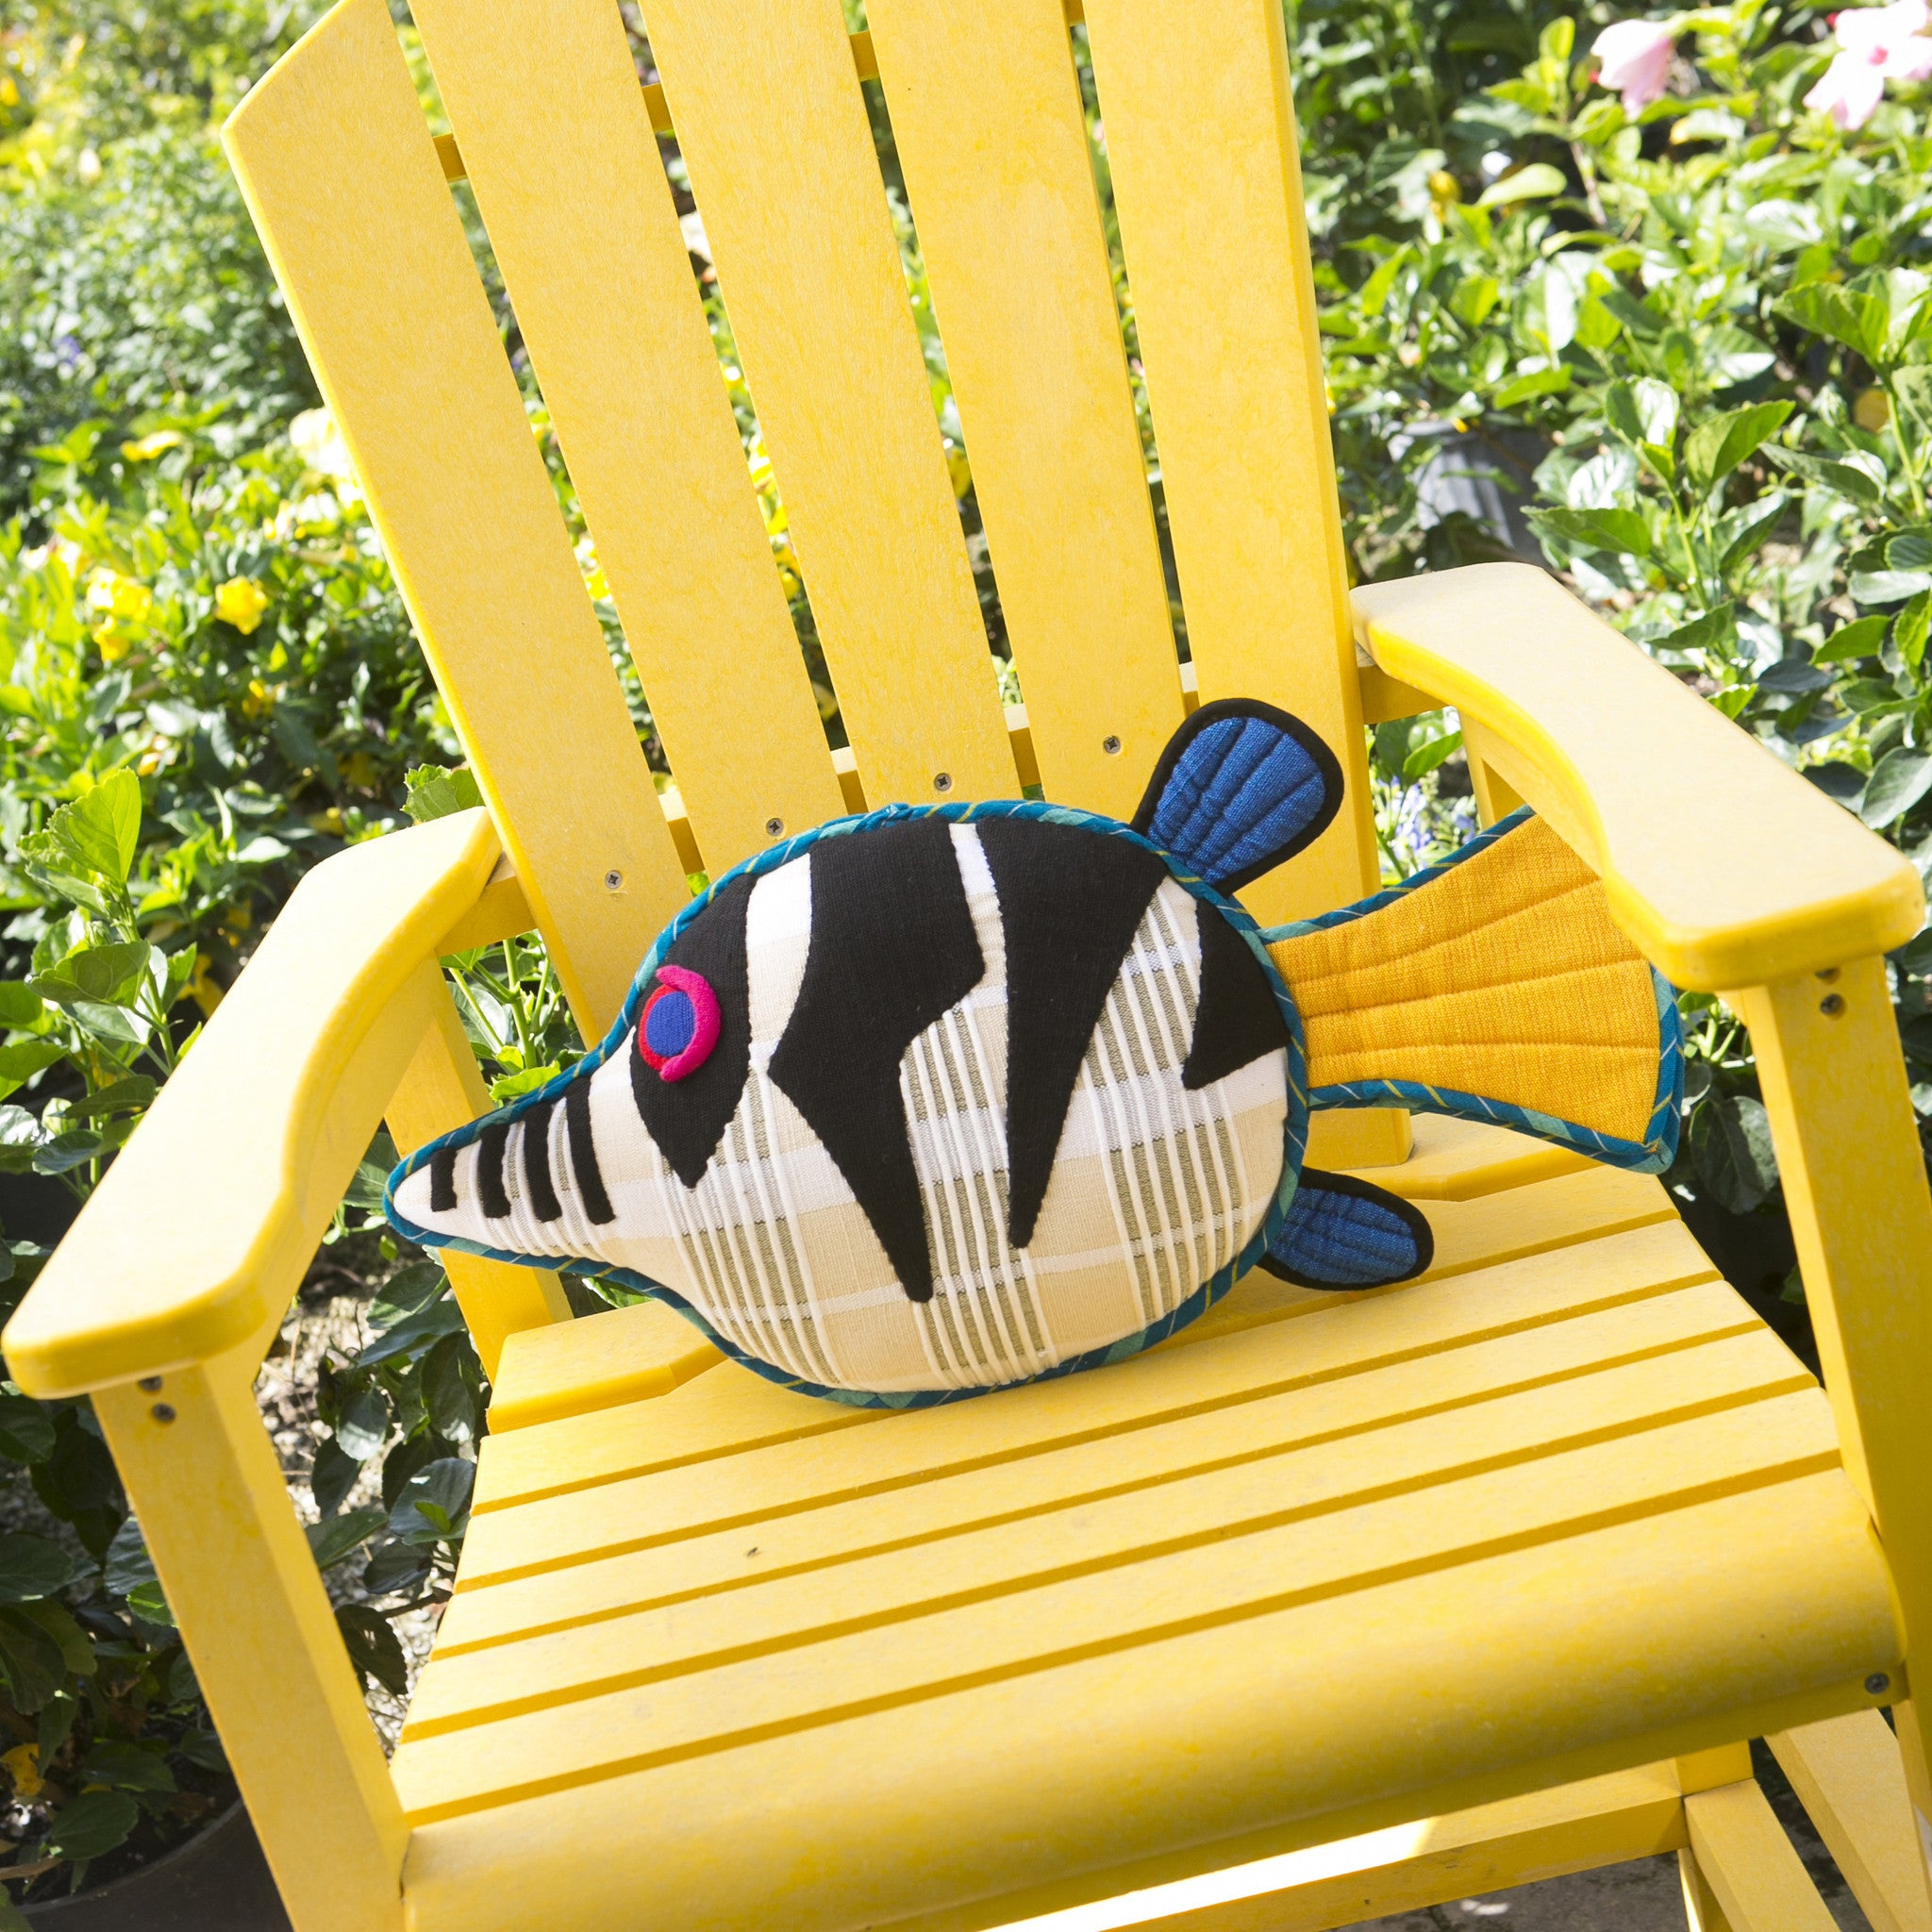 Flash, the Sharpnosed Puffer Fish – Adding the perfect punch of color! (small size)